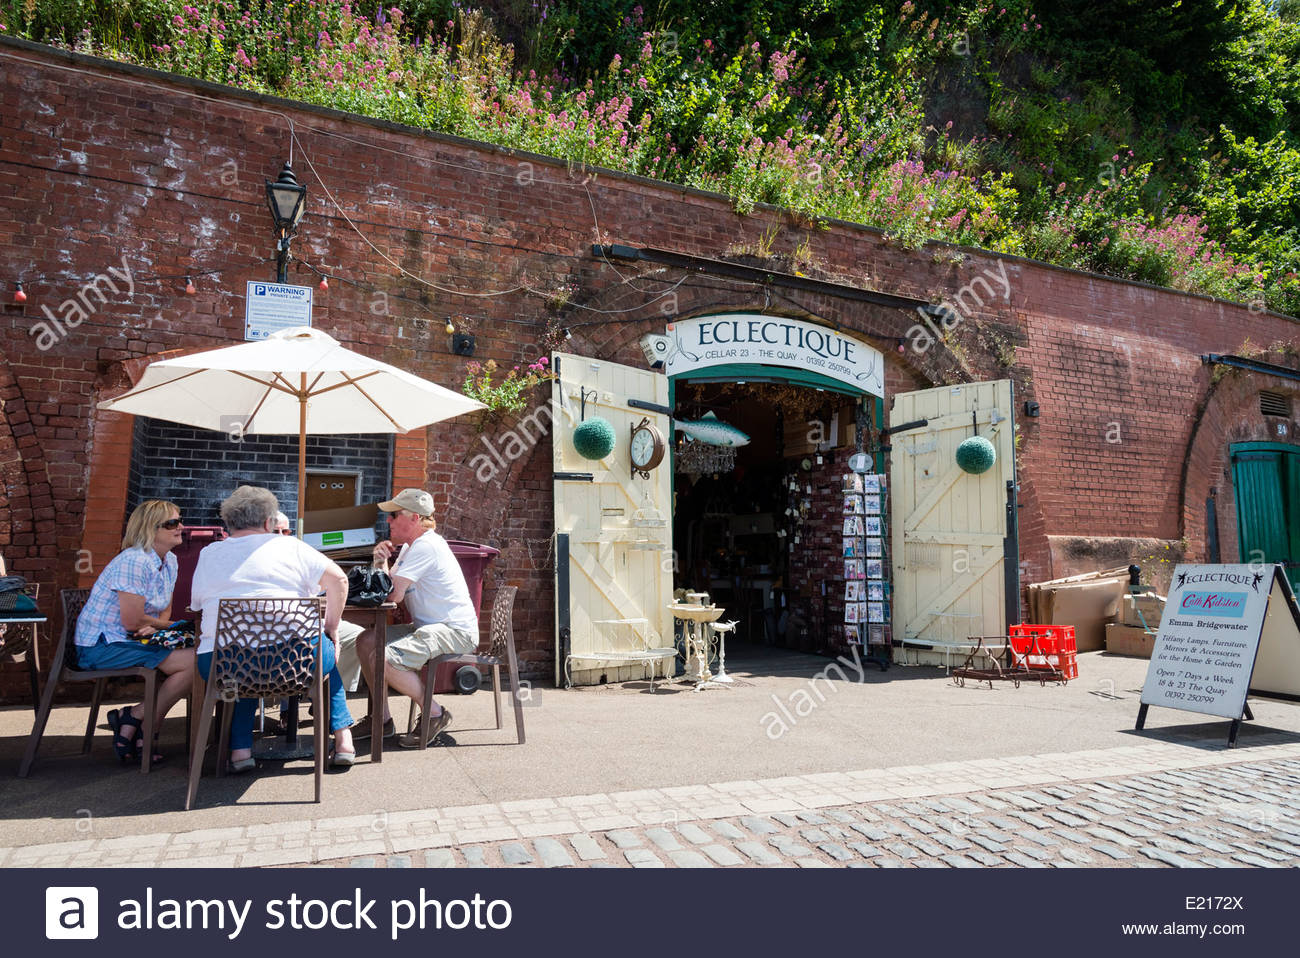 Eclectique Shop at the Quay, Exeter, Devon, UK. - Stock Image